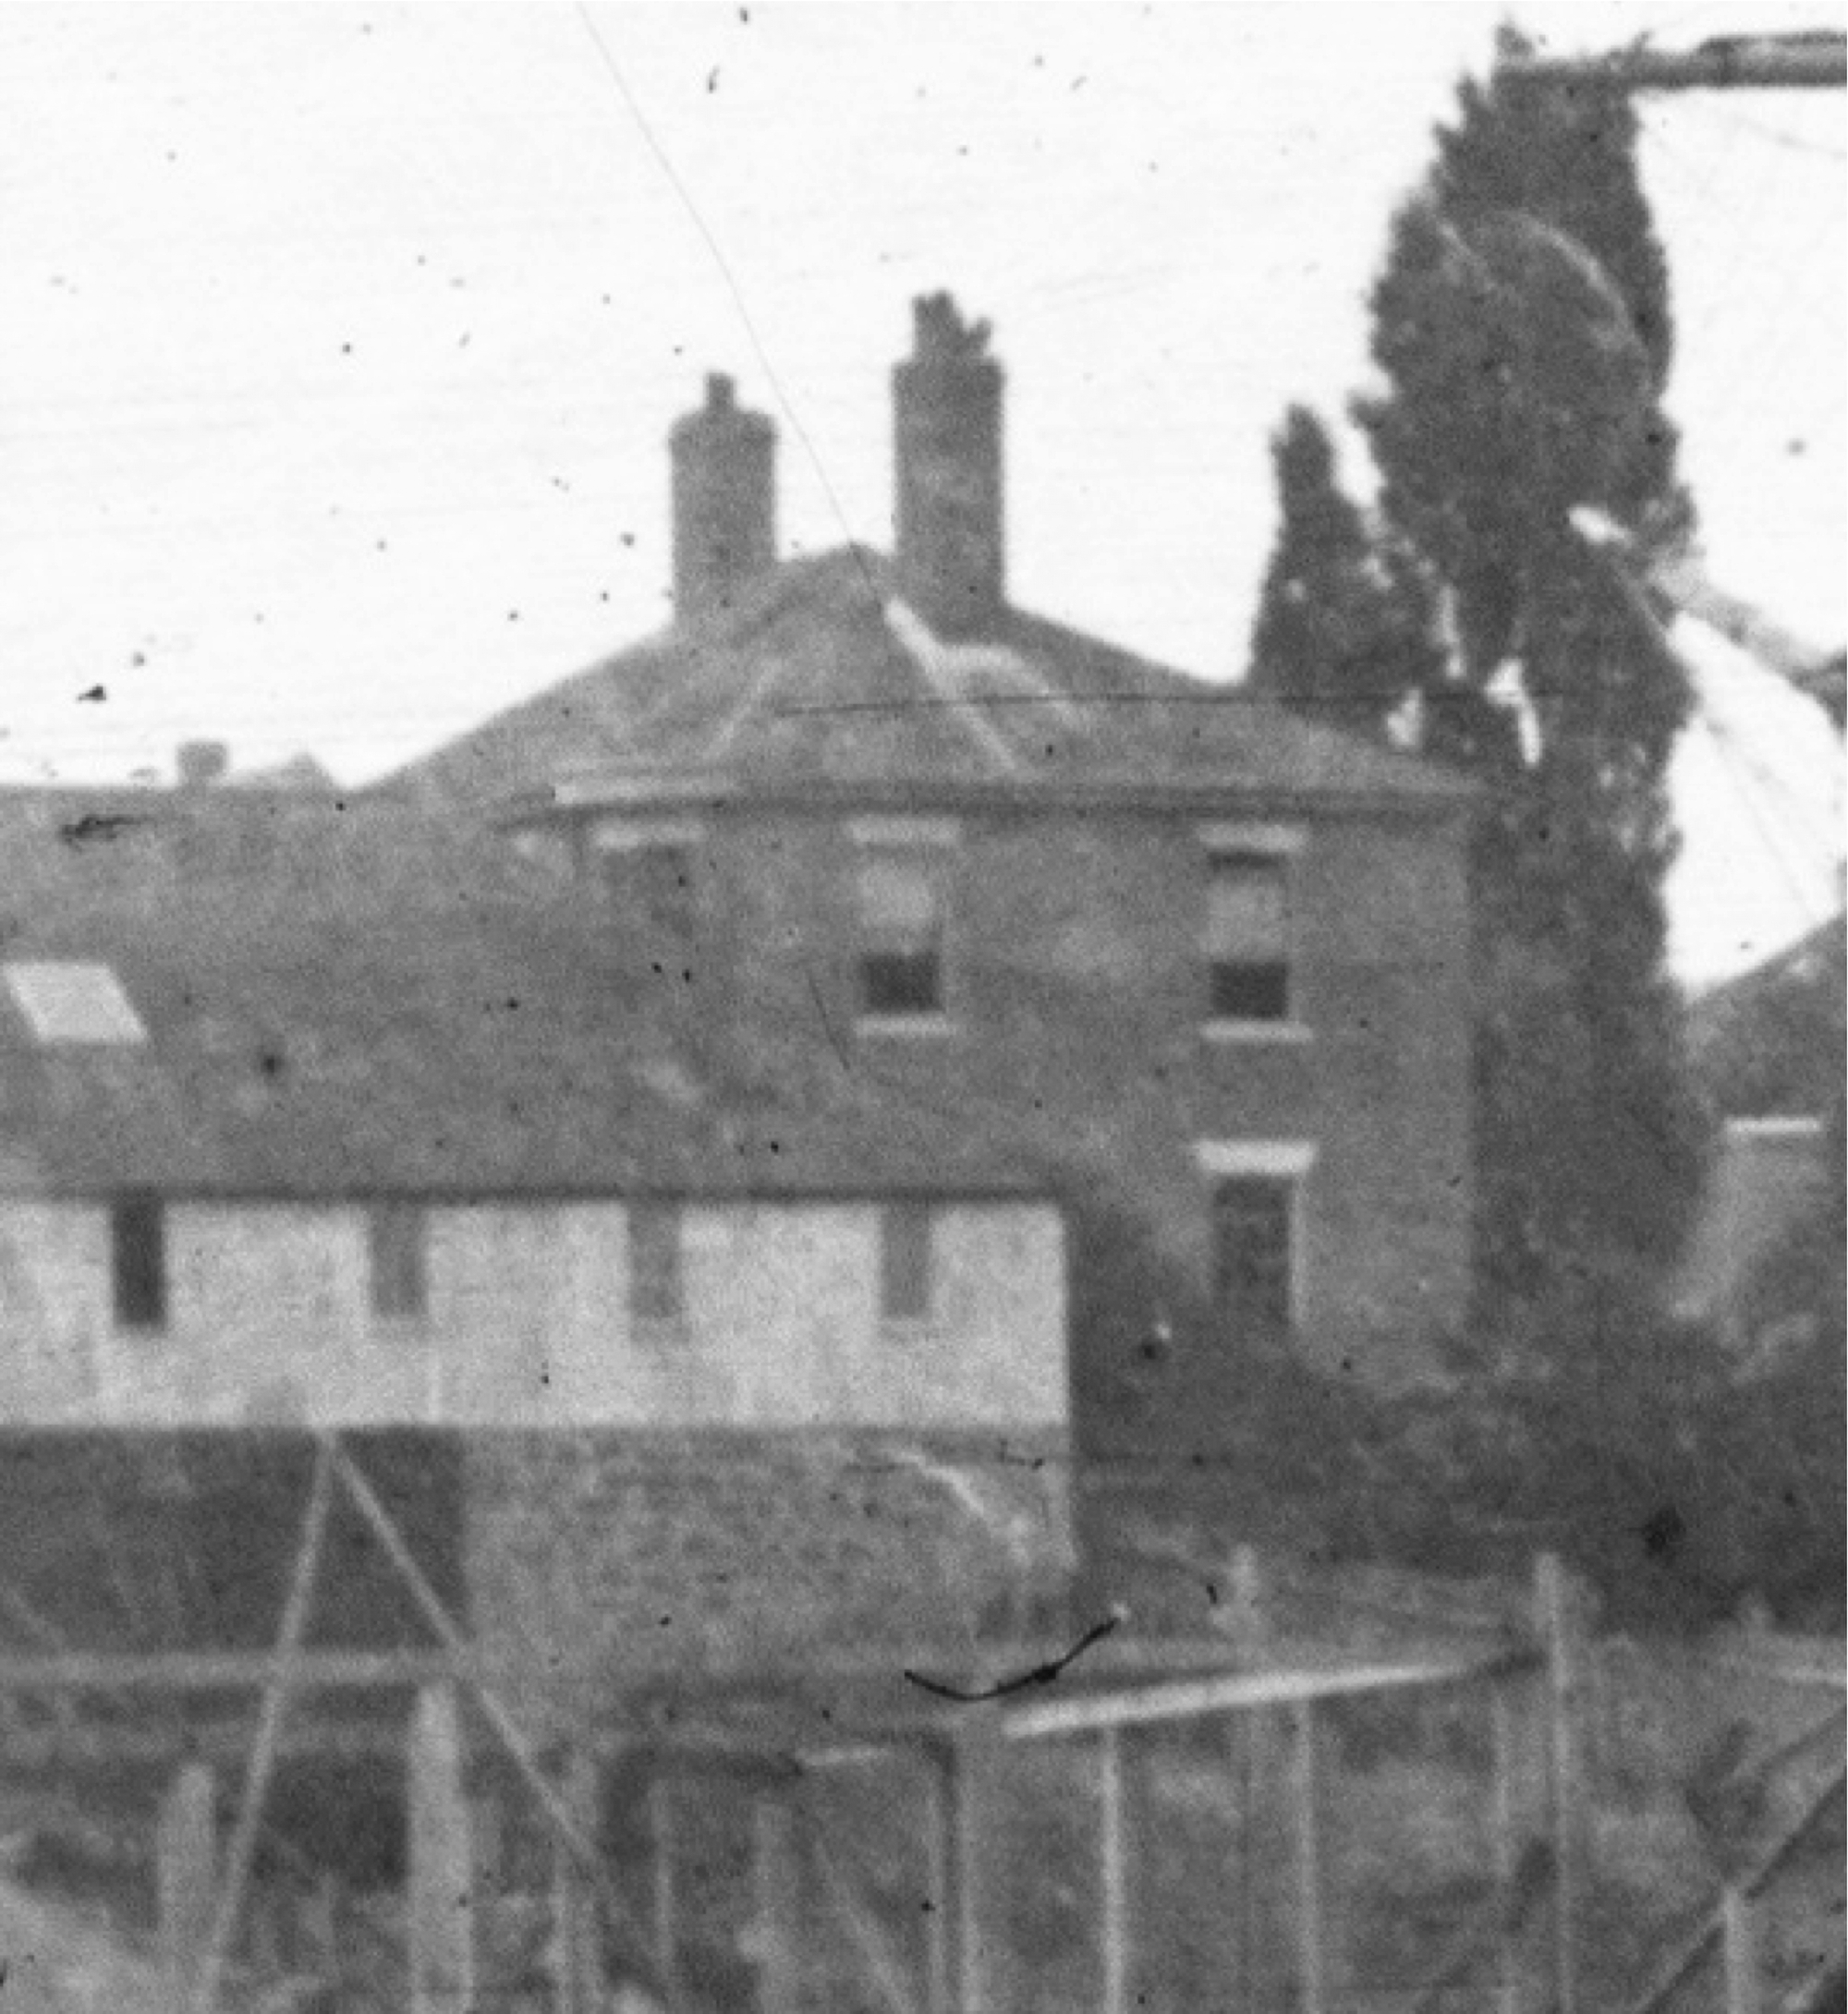 Excerpt from a photograph of a Battery Point Slipyard (1890) showing No. 1 Sloane Street